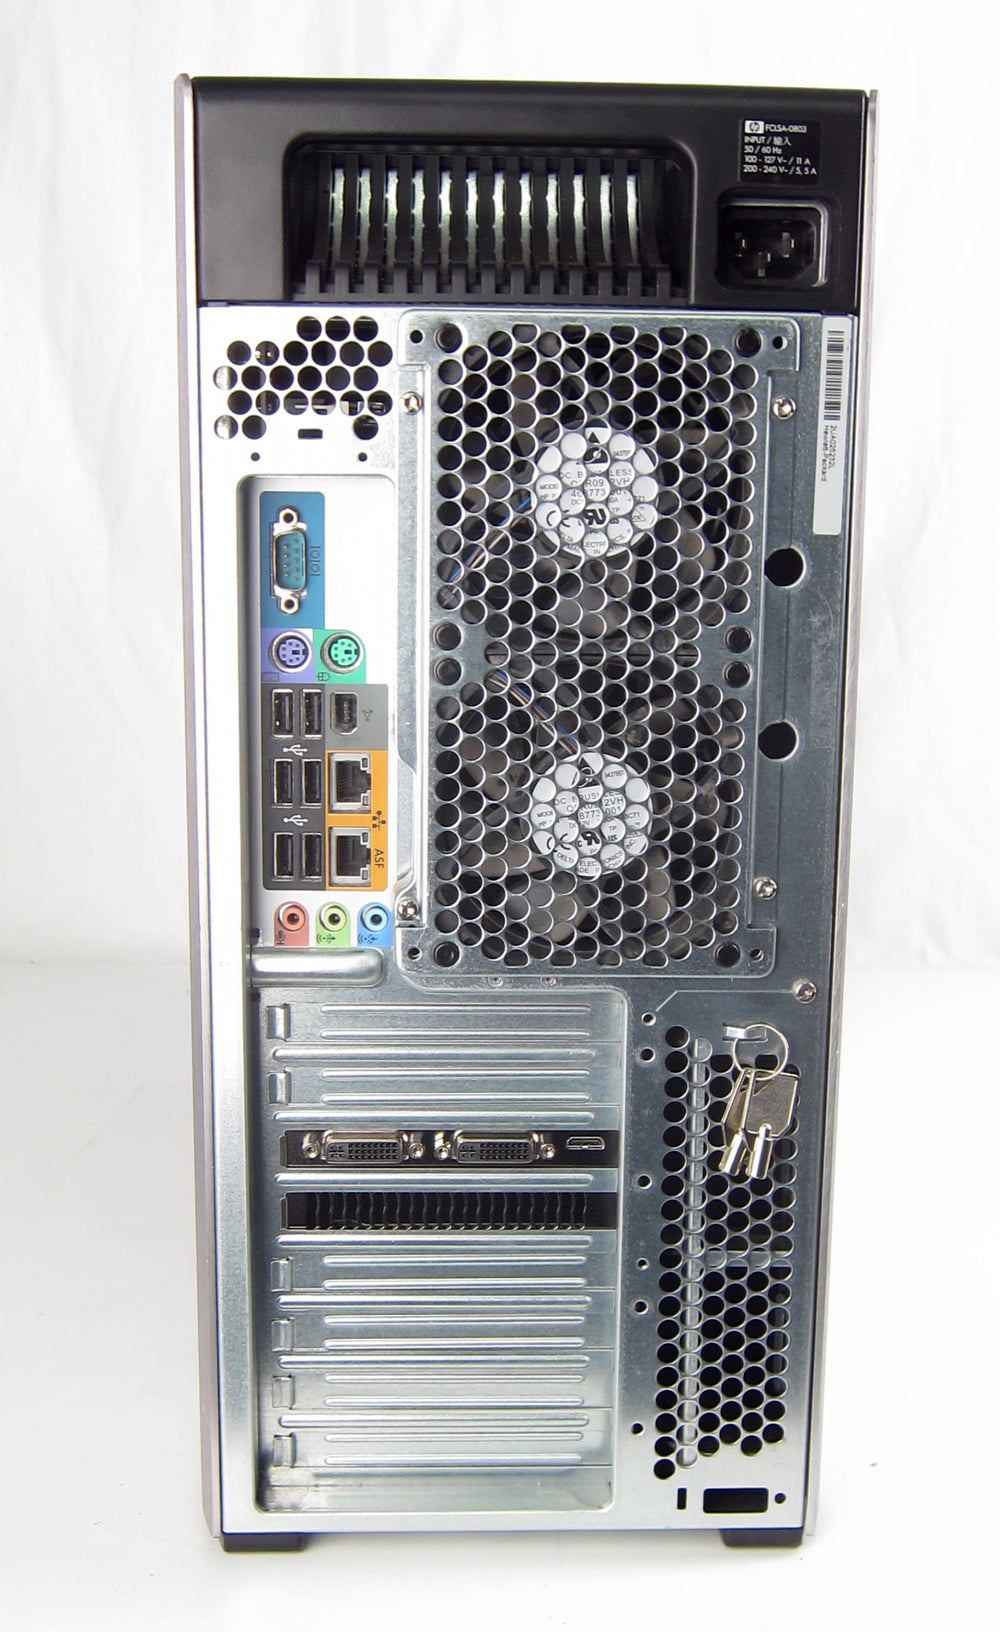 HP Z800 - DUAL Xeon X5670 6-core 2.9GHz , 48GB RAM, 2TB HDD - Bonanza Deals